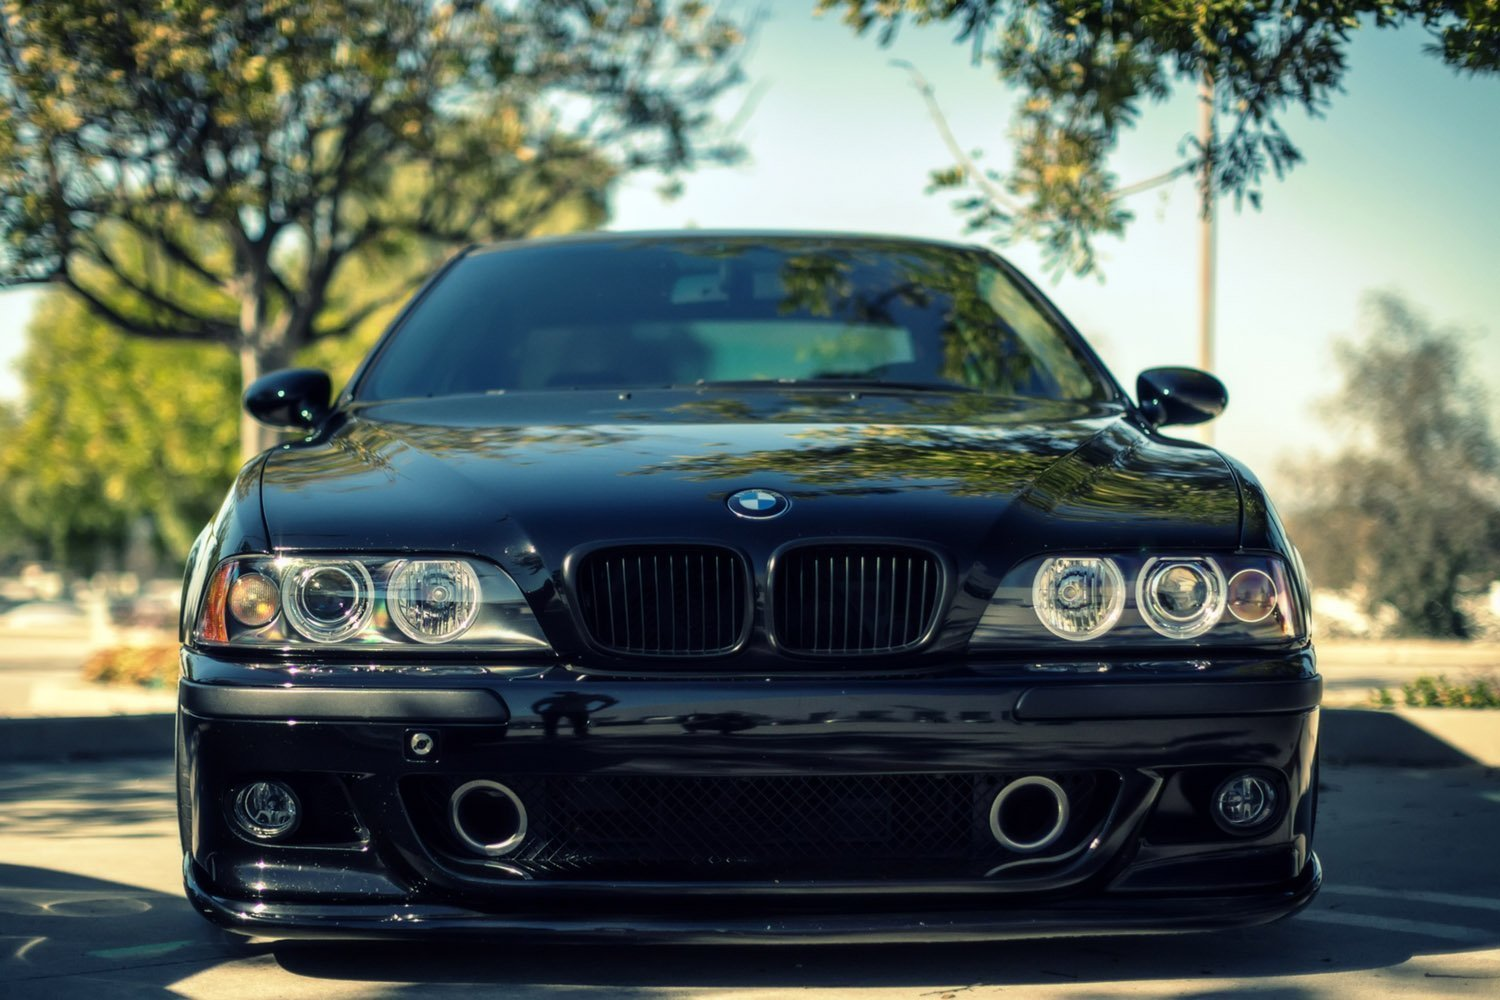 BMW E39 M5 >> Amazon Com Bmw M5 E39 Black Car Poster 13x19 Posters Prints